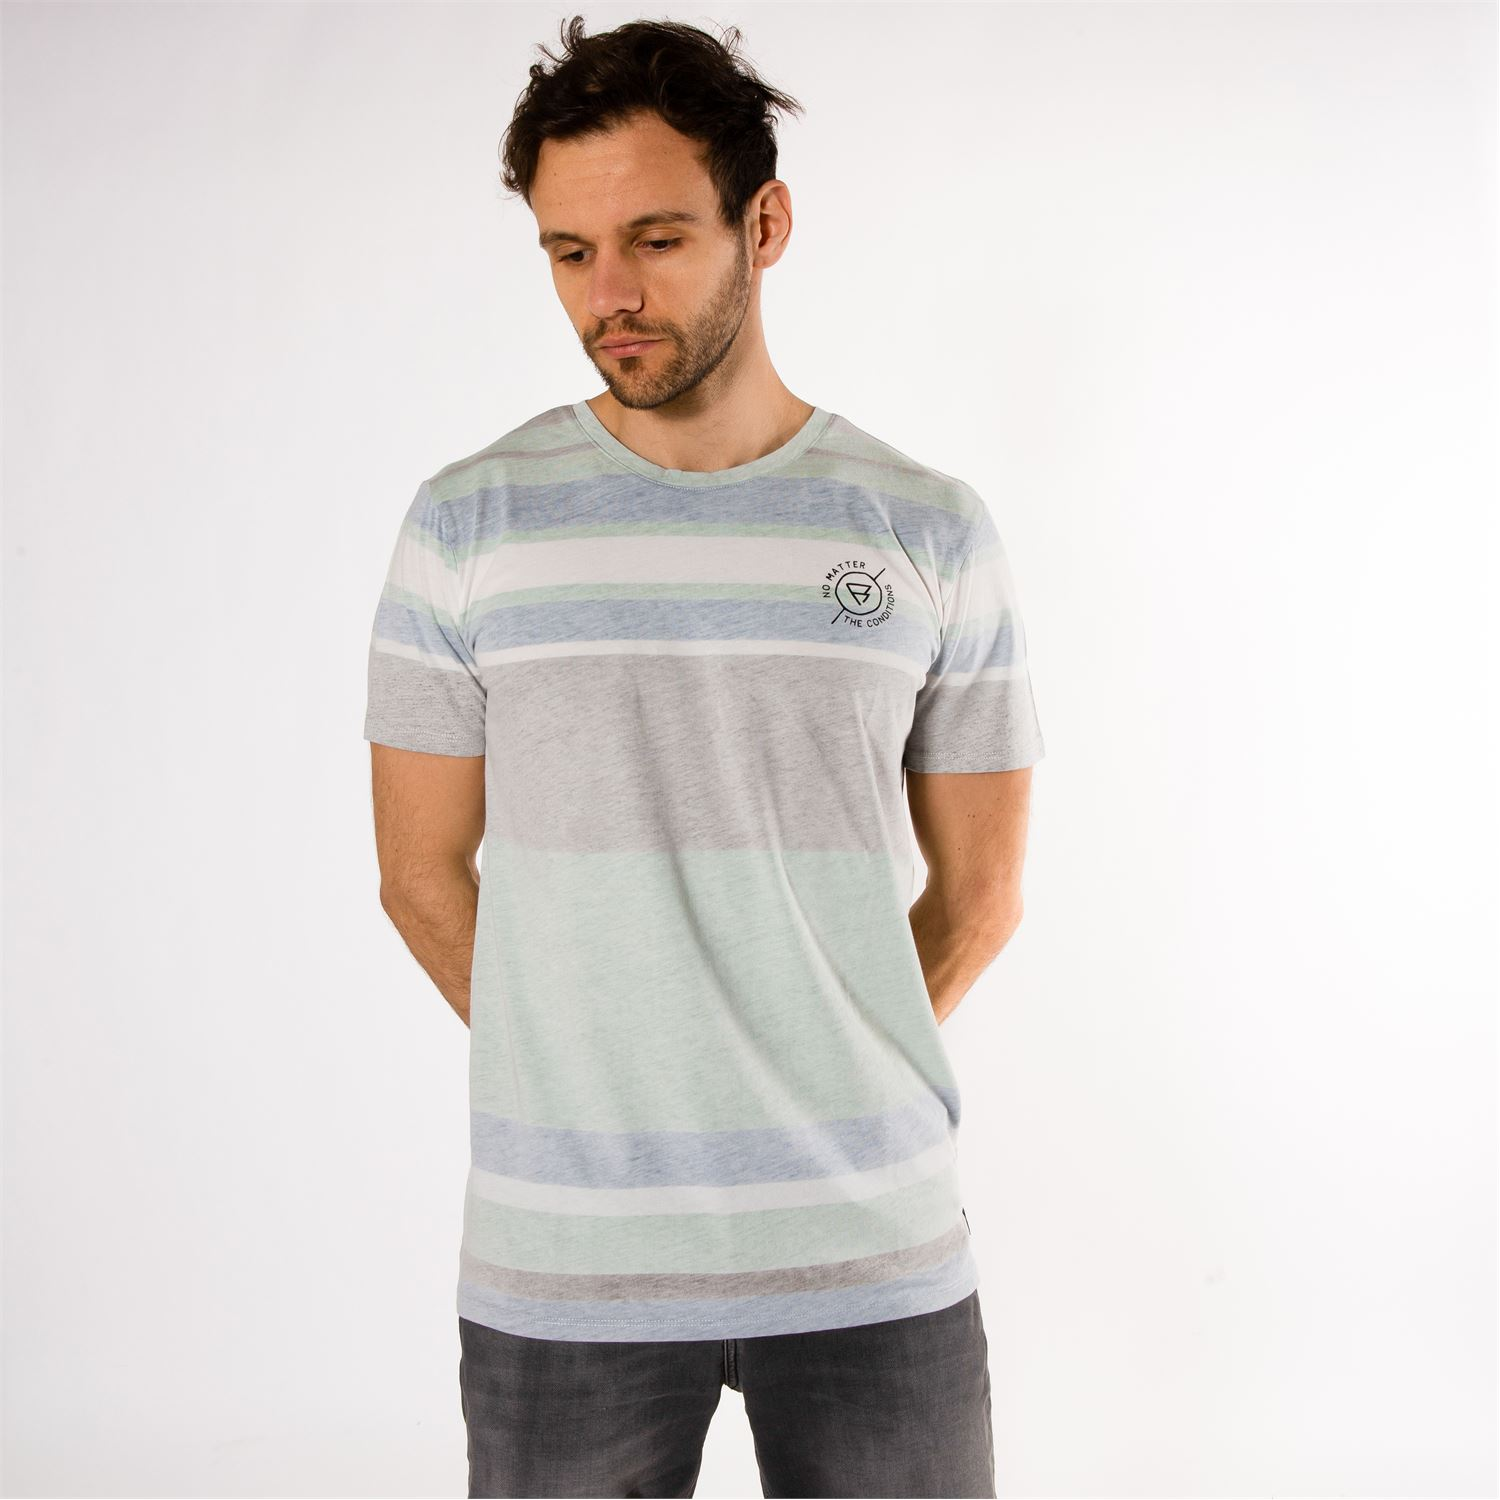 fce2580e3e4 ... t-shirts   polos - Brunotti online shop. Our model is 183 cm tall and  wears size M